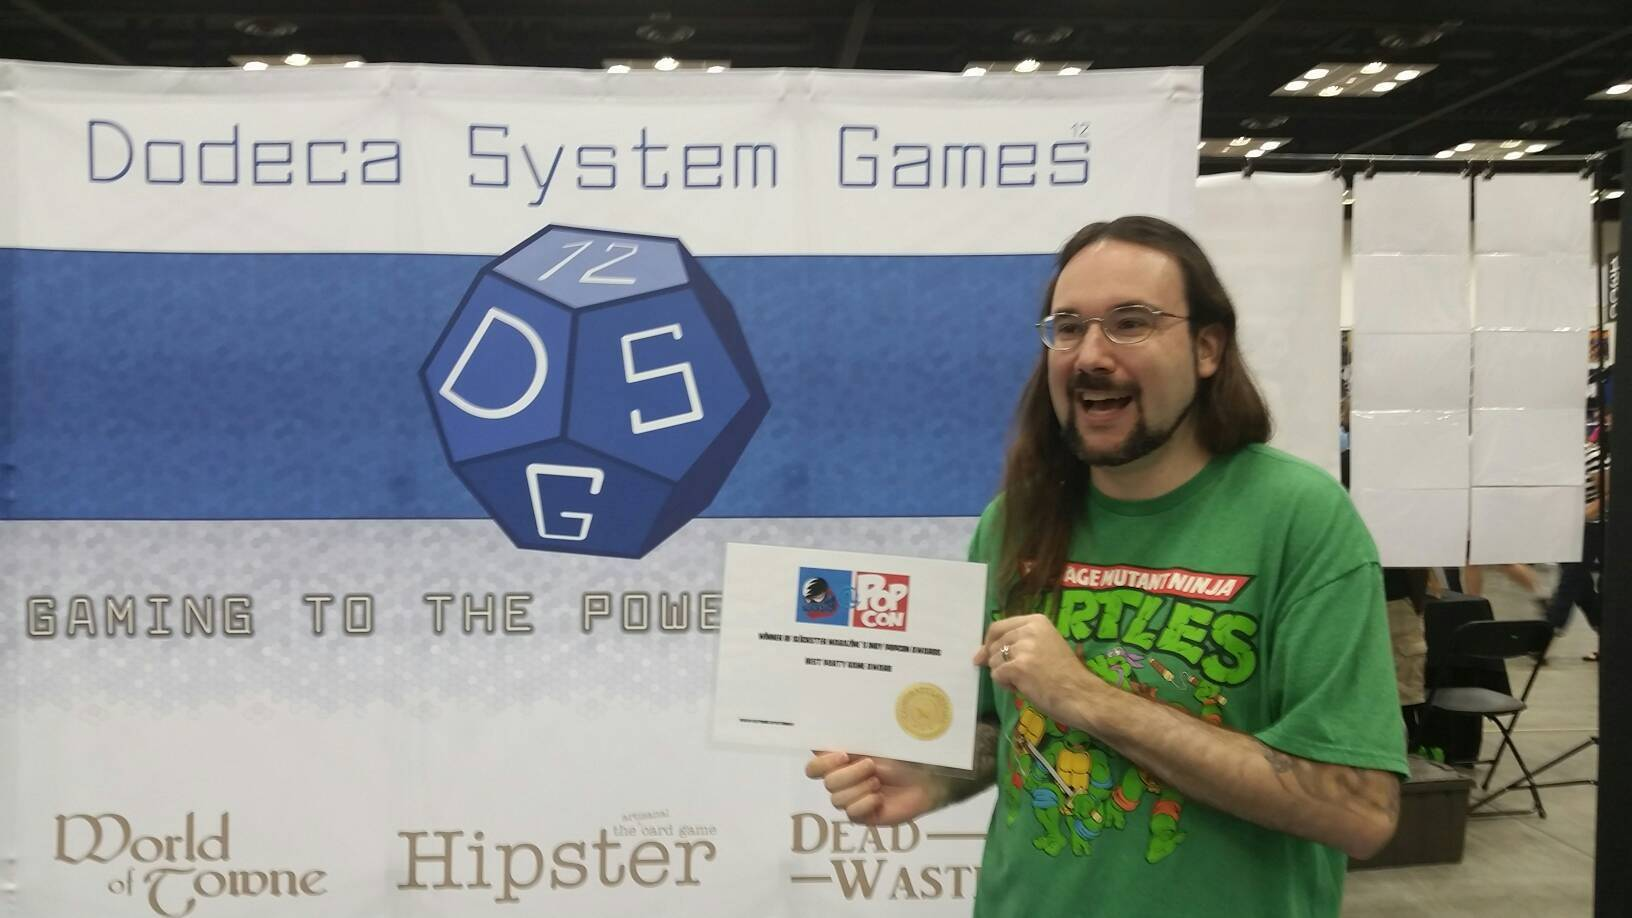 Dodeca System Games